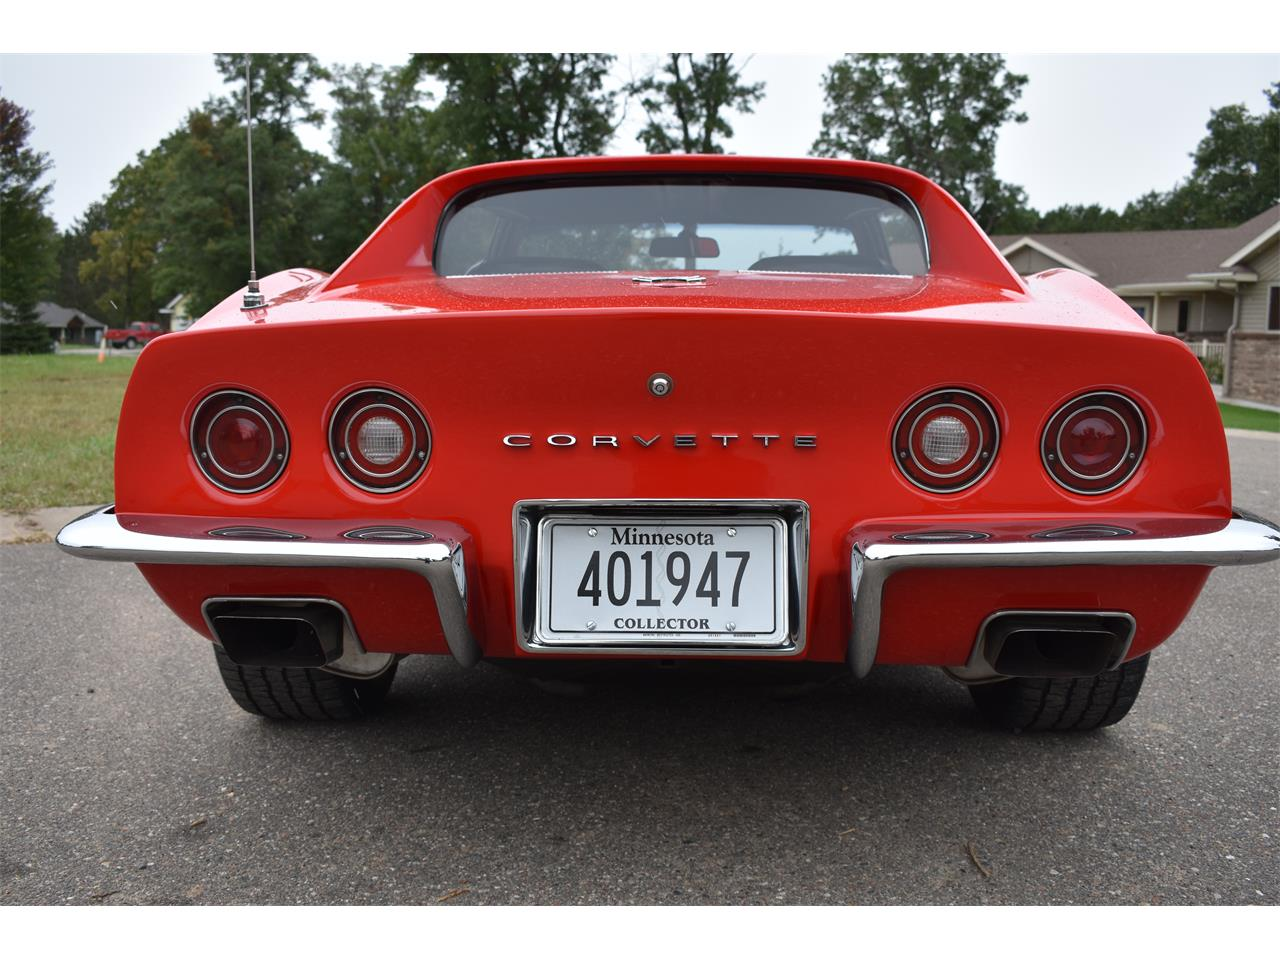 Large Picture of 1972 Corvette - $27,000.00 Offered by a Private Seller - OMCE